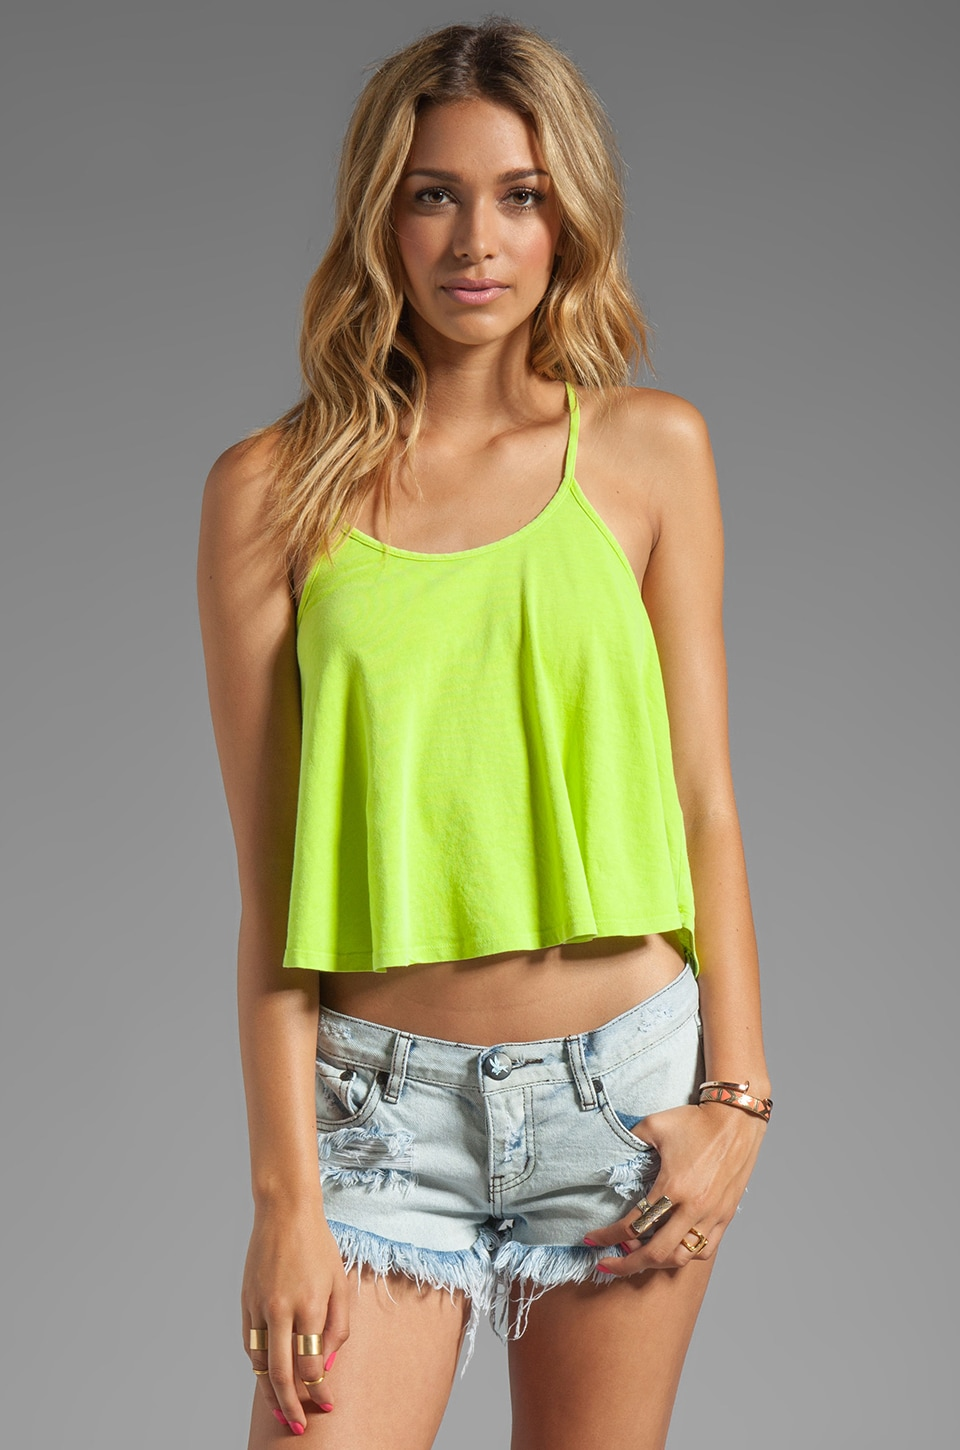 Bobi Light Weight Jersey Racer Tank in Yellowtail